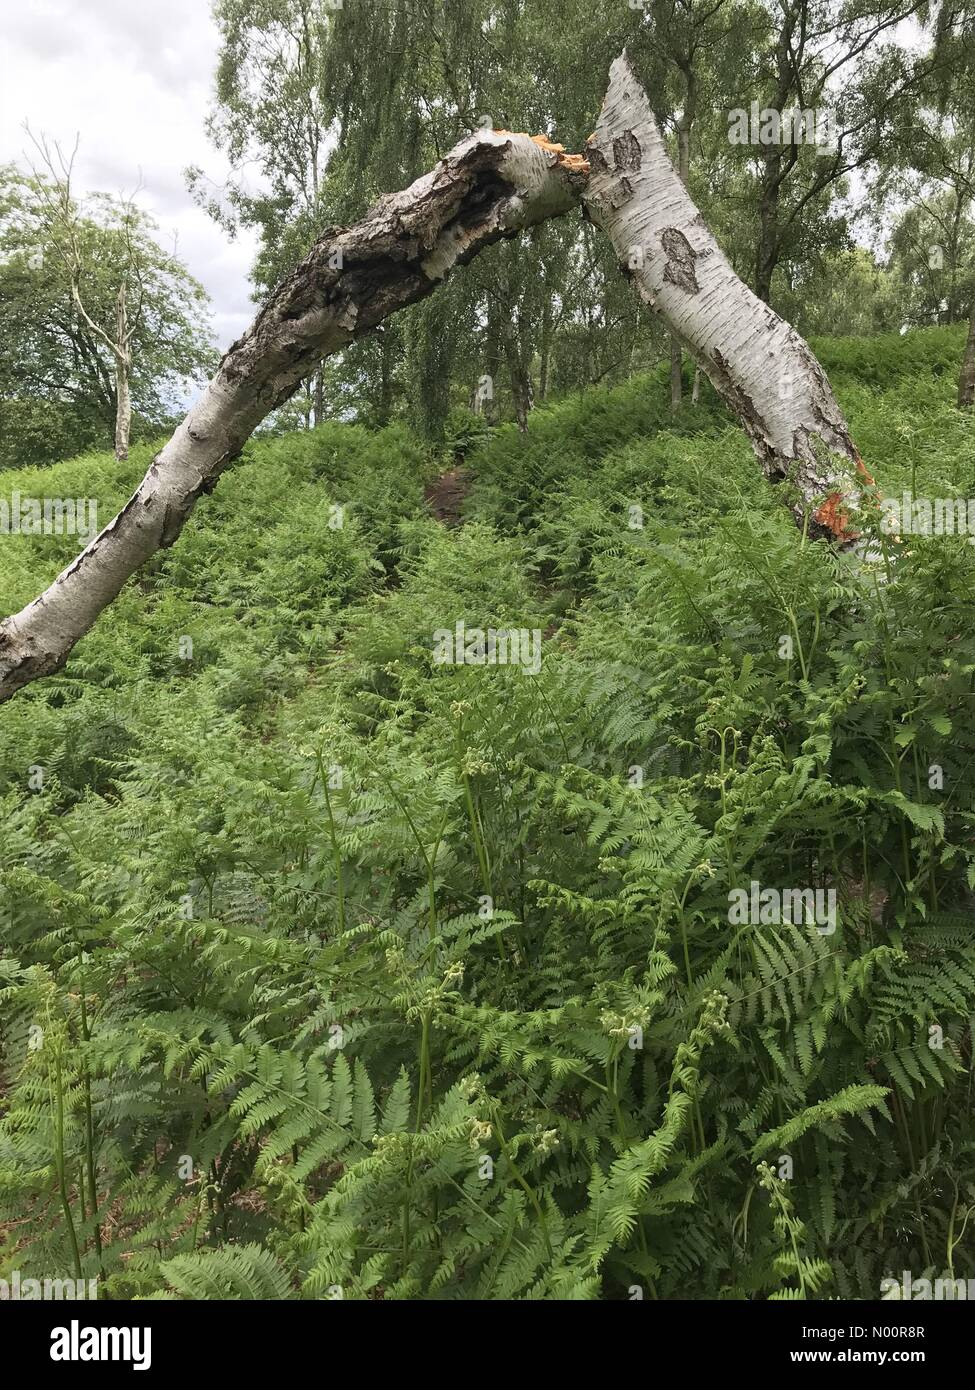 A recent spate of tree vandalism on Cannock Chase, Staffordshire. Tree has been snapped in half and bark stripped on the lower trunk. Damage occurred Friday 15th June - Stock Image